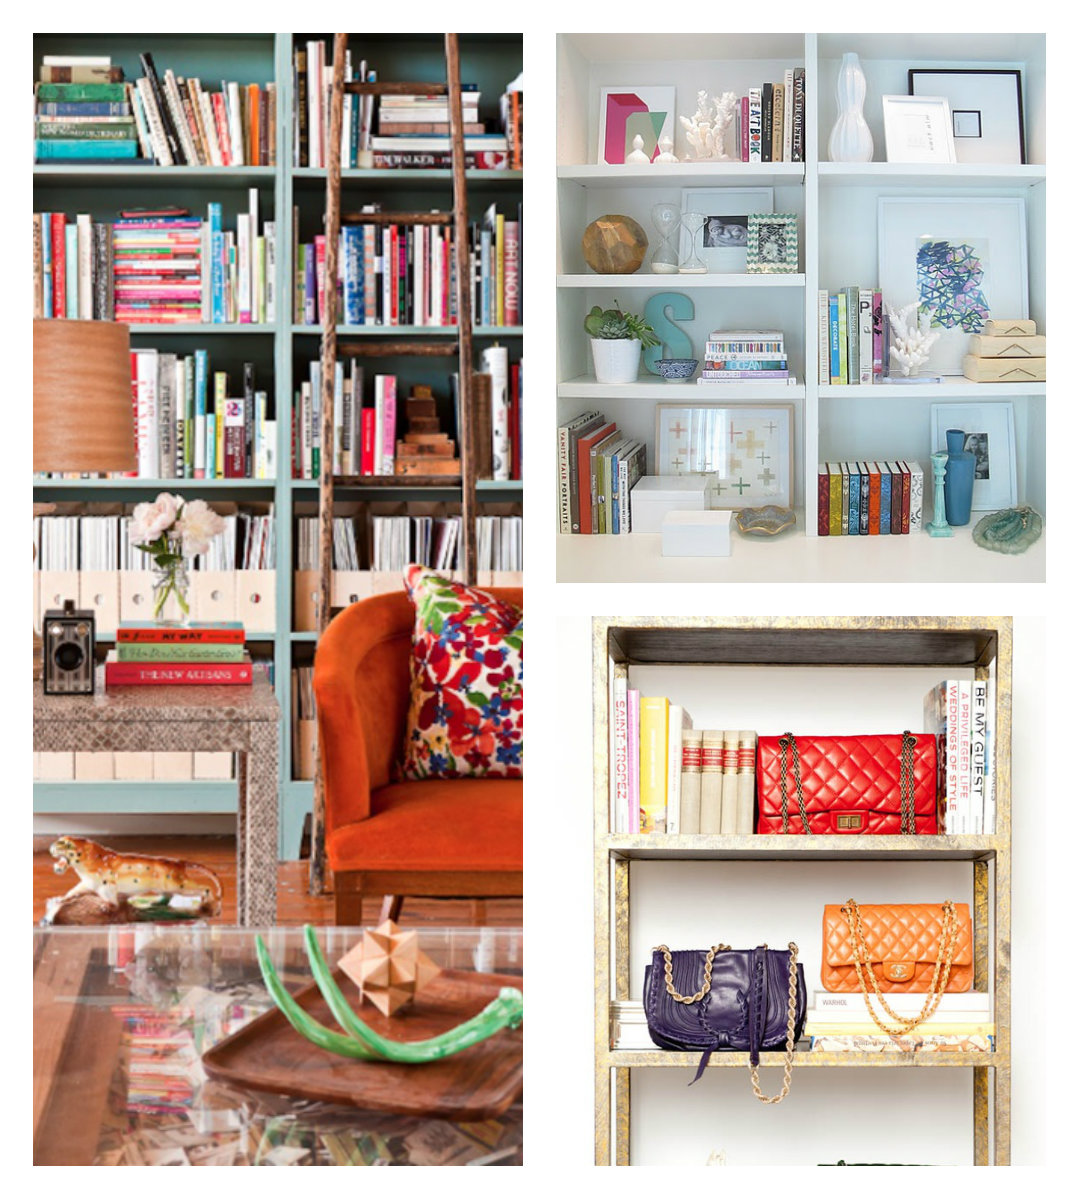 Inspirations for a stylish bookcase-to-be